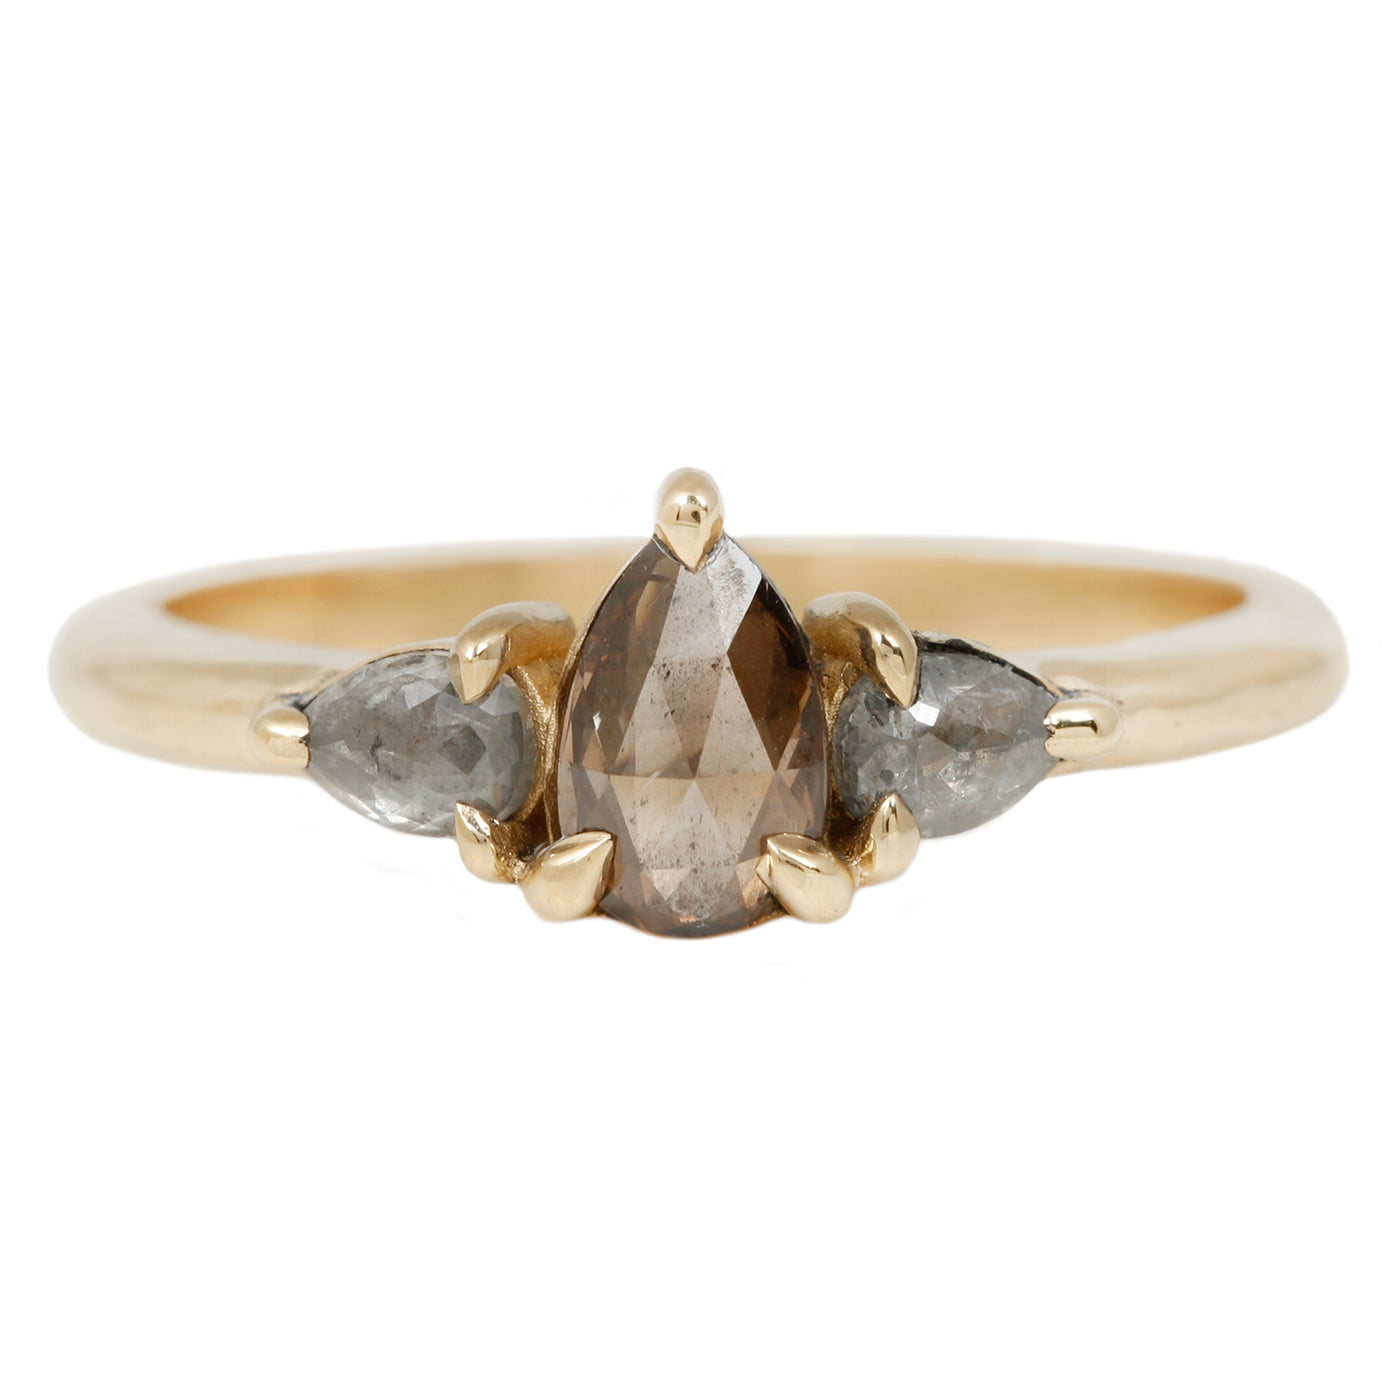 Lauren Wolf Metropolitan Diamond Ring in Yellow Gold